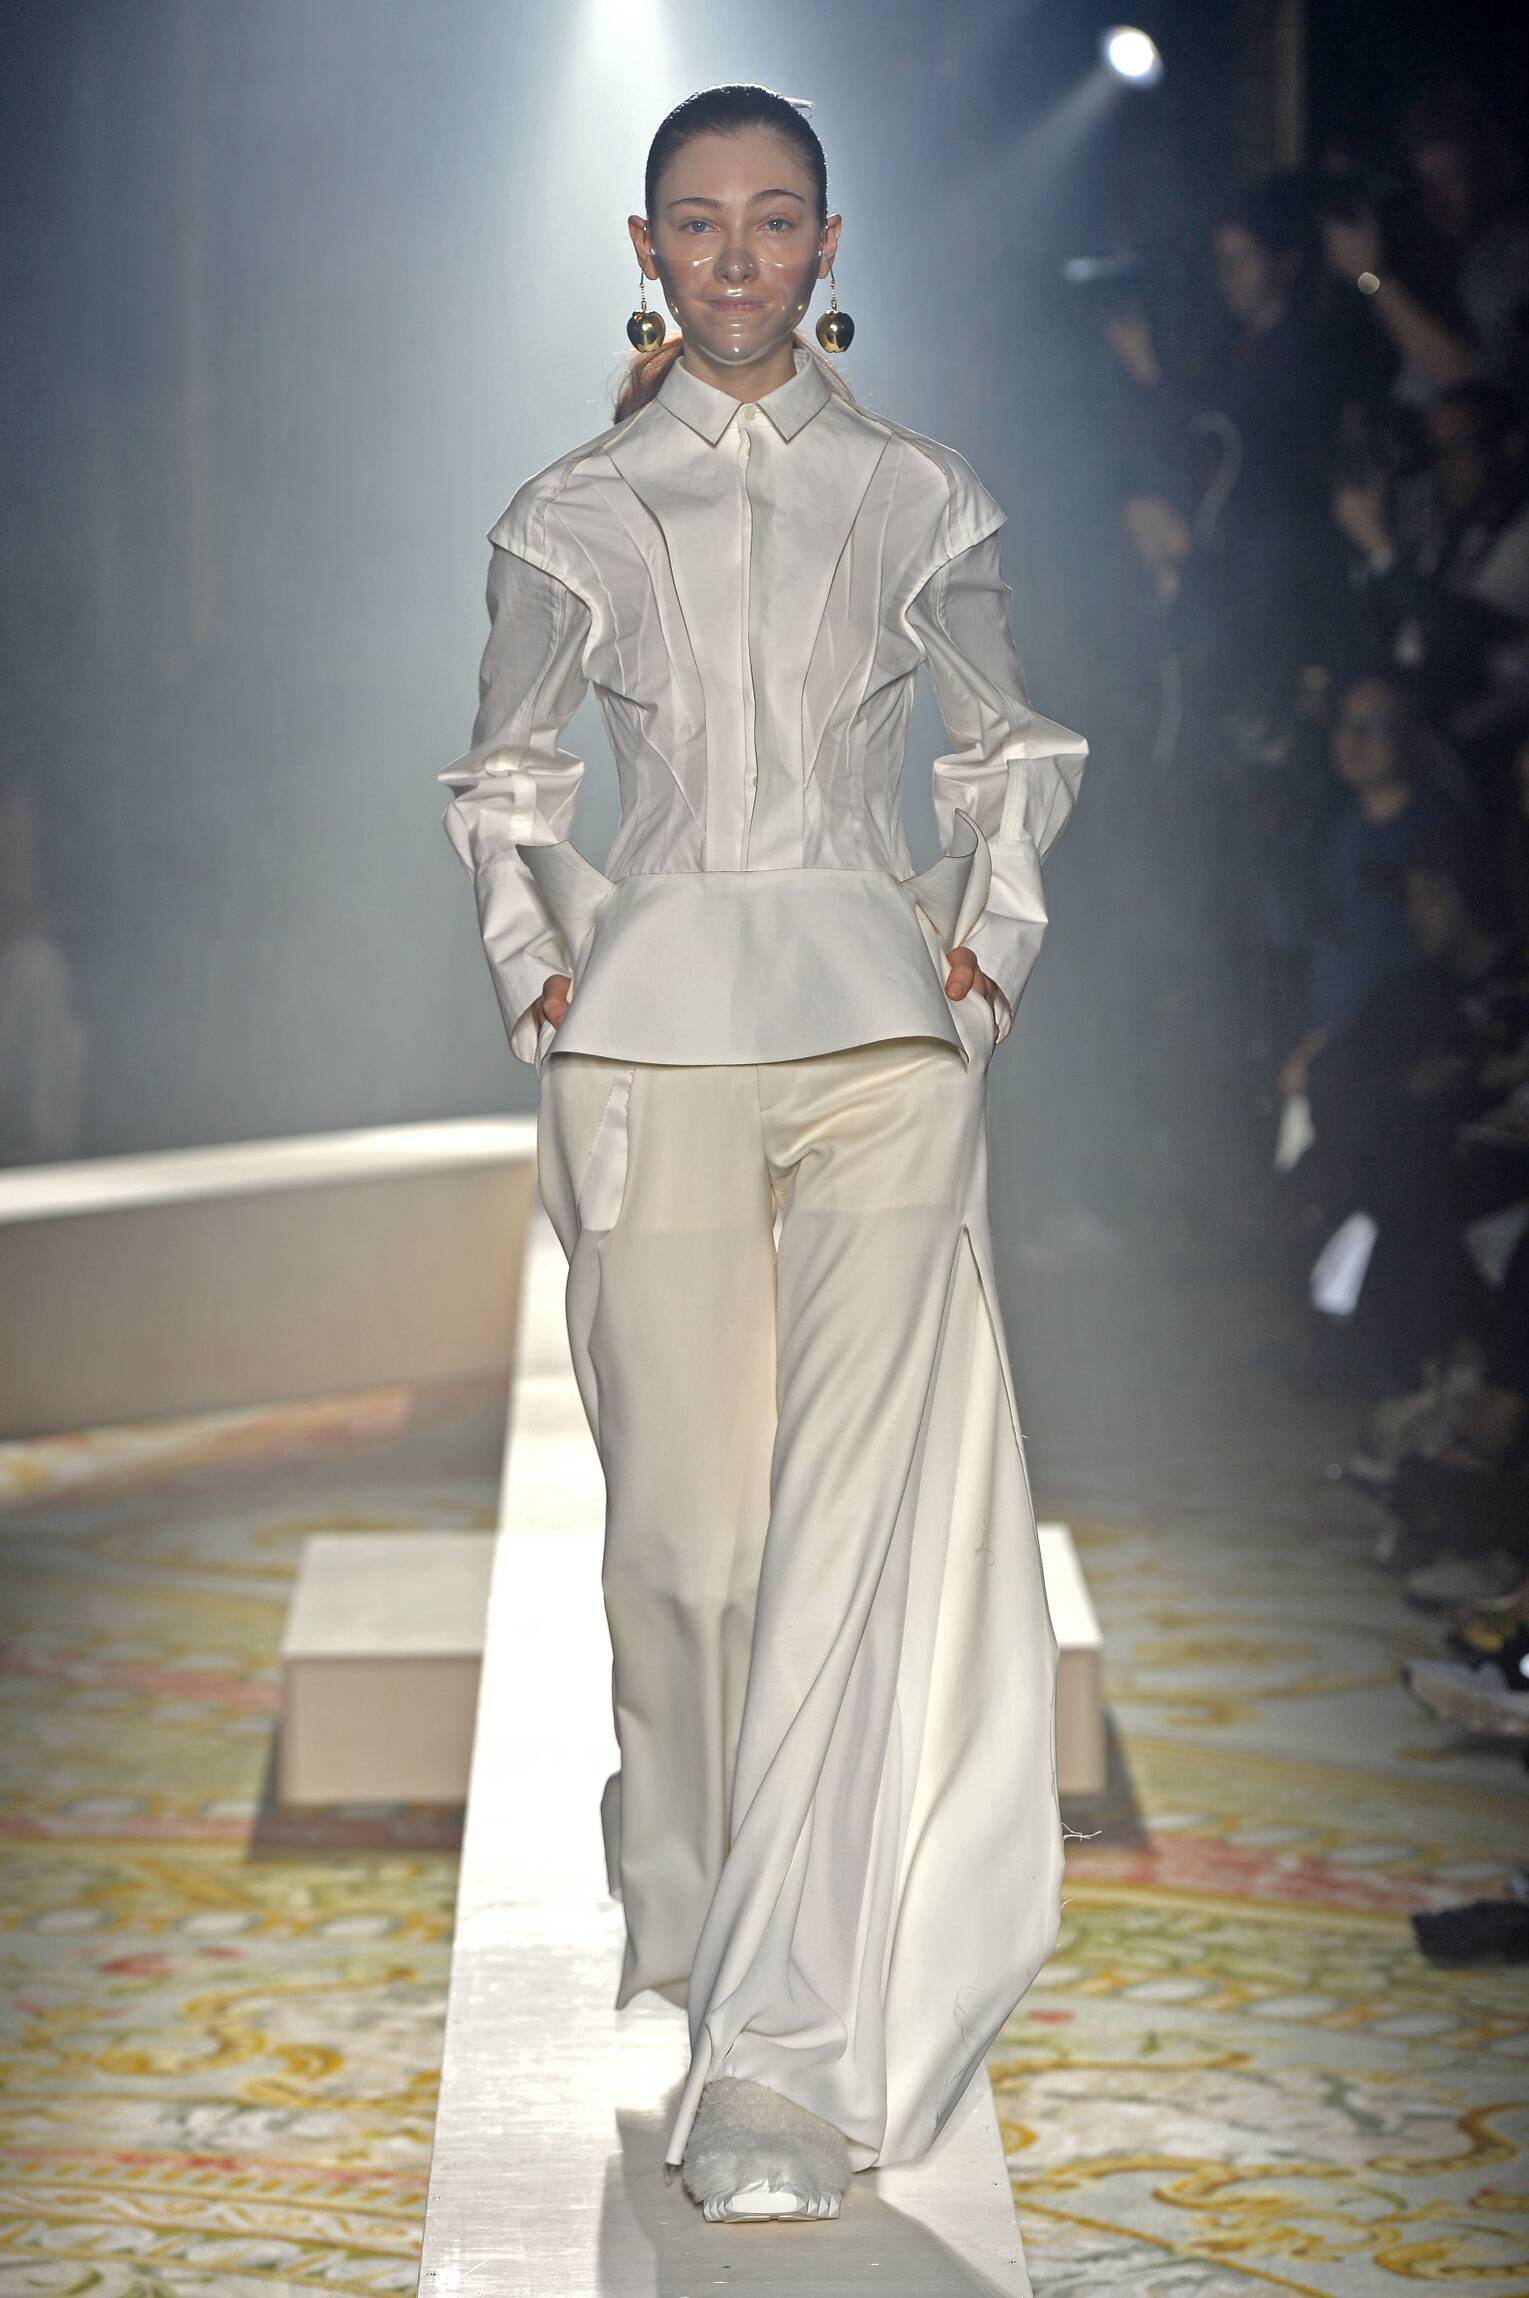 Winter 2015 Fashion Show Undercover Collection